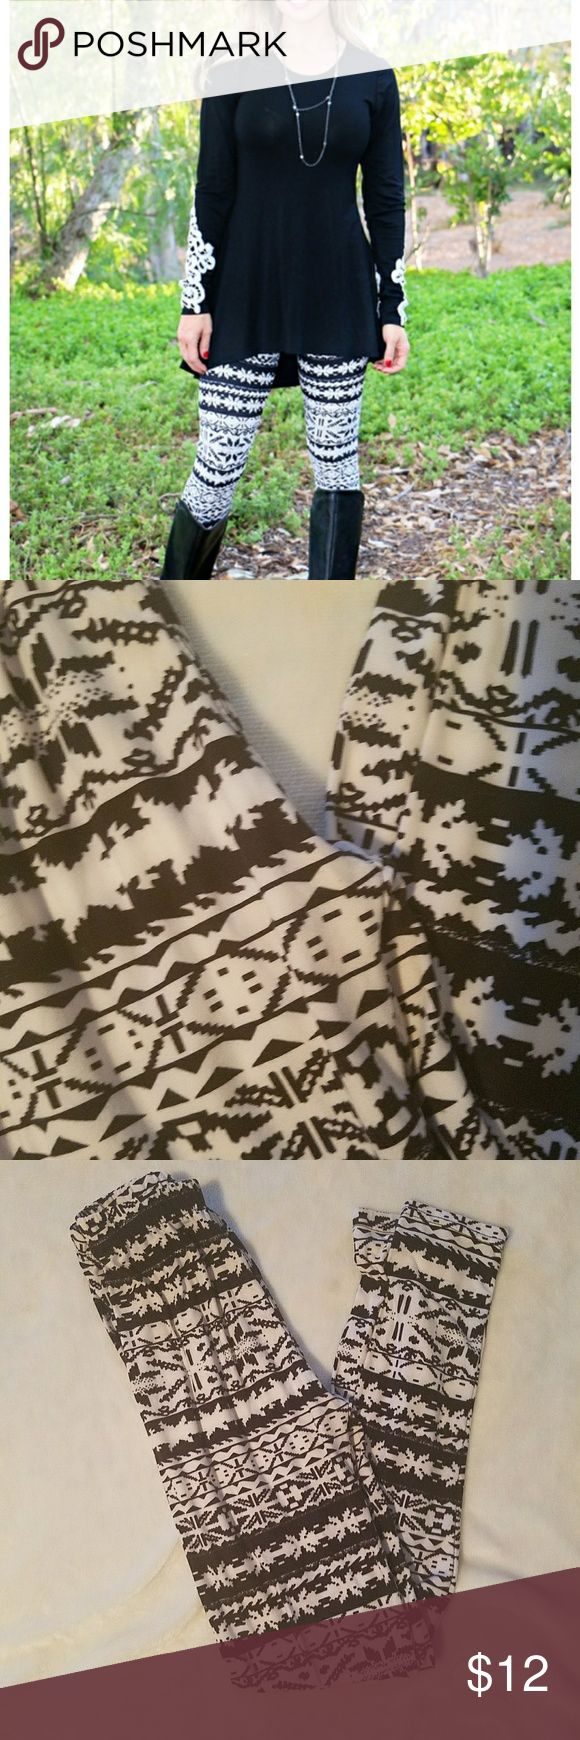 Buttery Soft Snowflake Leggings Worn and washed twice. One Size fits 2-10. 92% poly and 8% spandex. So comfy but I have WAY too many leggings! Smoke free home ❤ Pants Leggings